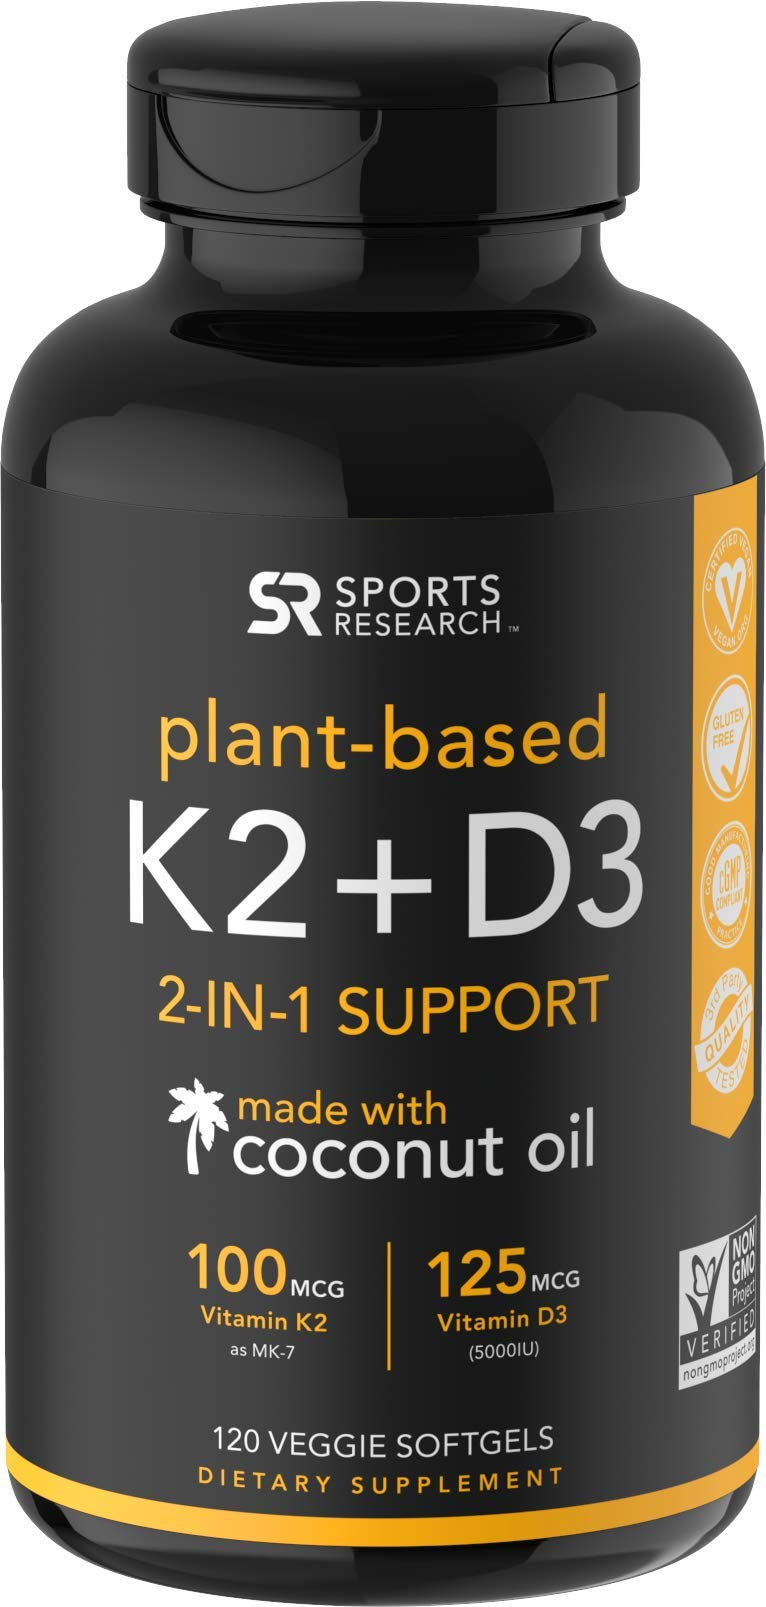 Vitamin K2 + D3 with Organic Coconut Oil for Better Absorption | 2-in-1 Support for Your Heart, Bones & Teeth | Vegan Certified, GMO & Gluten Free - 4 Month Supply!